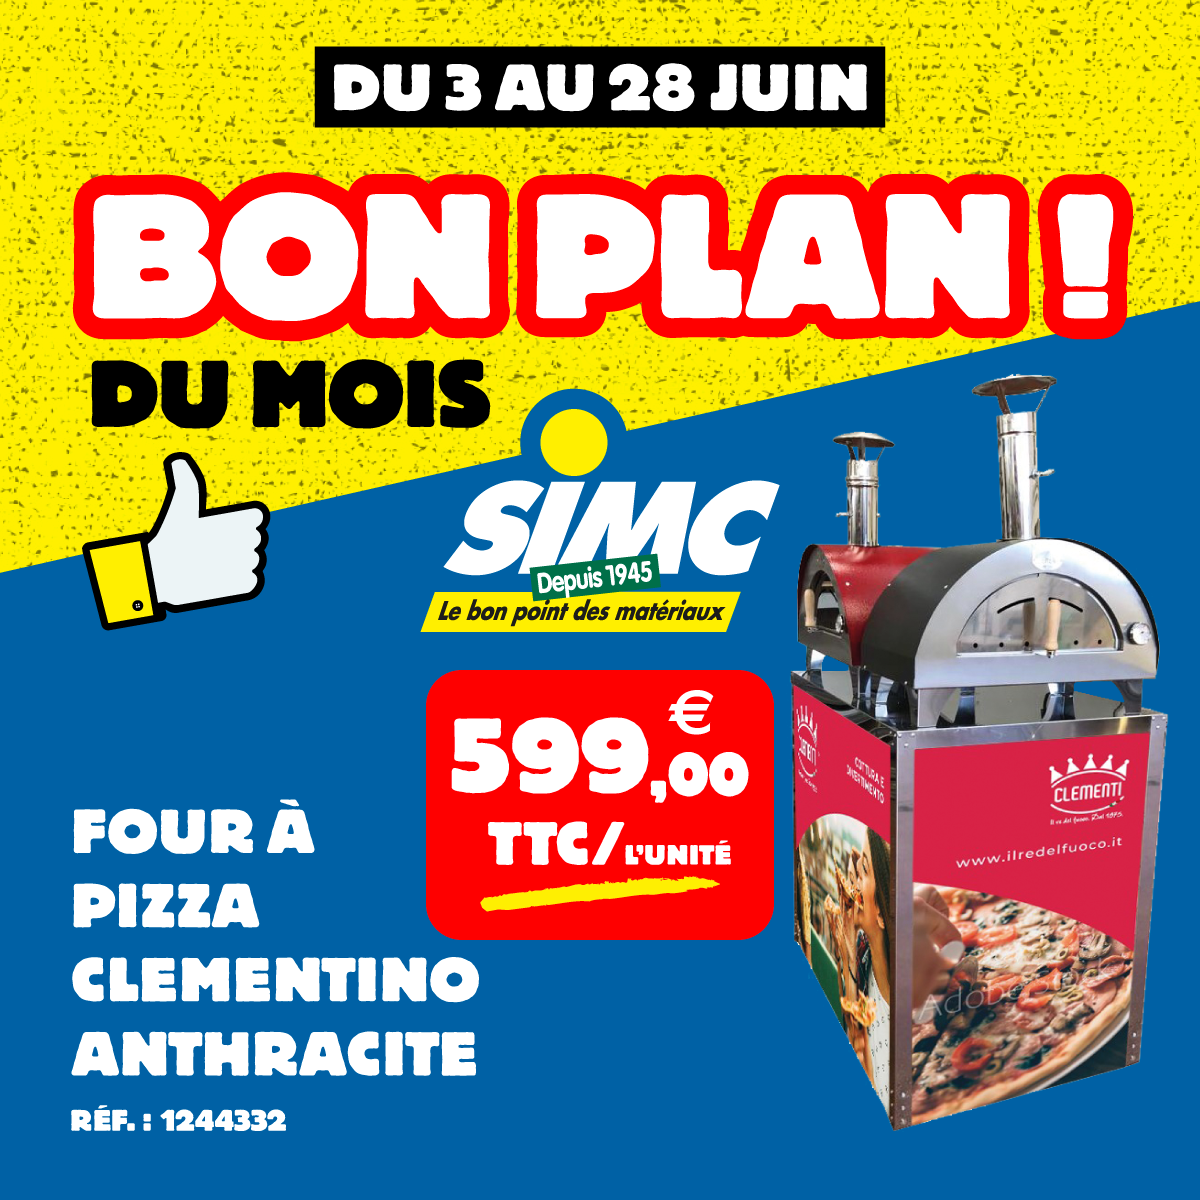 Four a pizza Clementino - simc